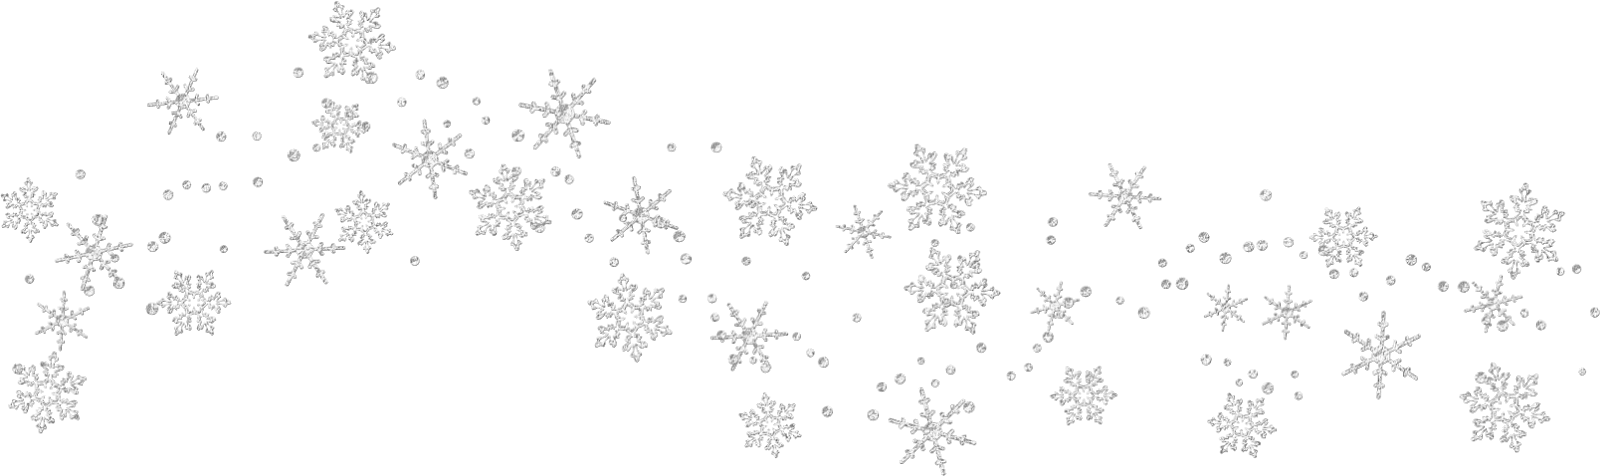 Snowflake clipart solid white clip art transparent The WI Newsletter: January 2016 clip art transparent